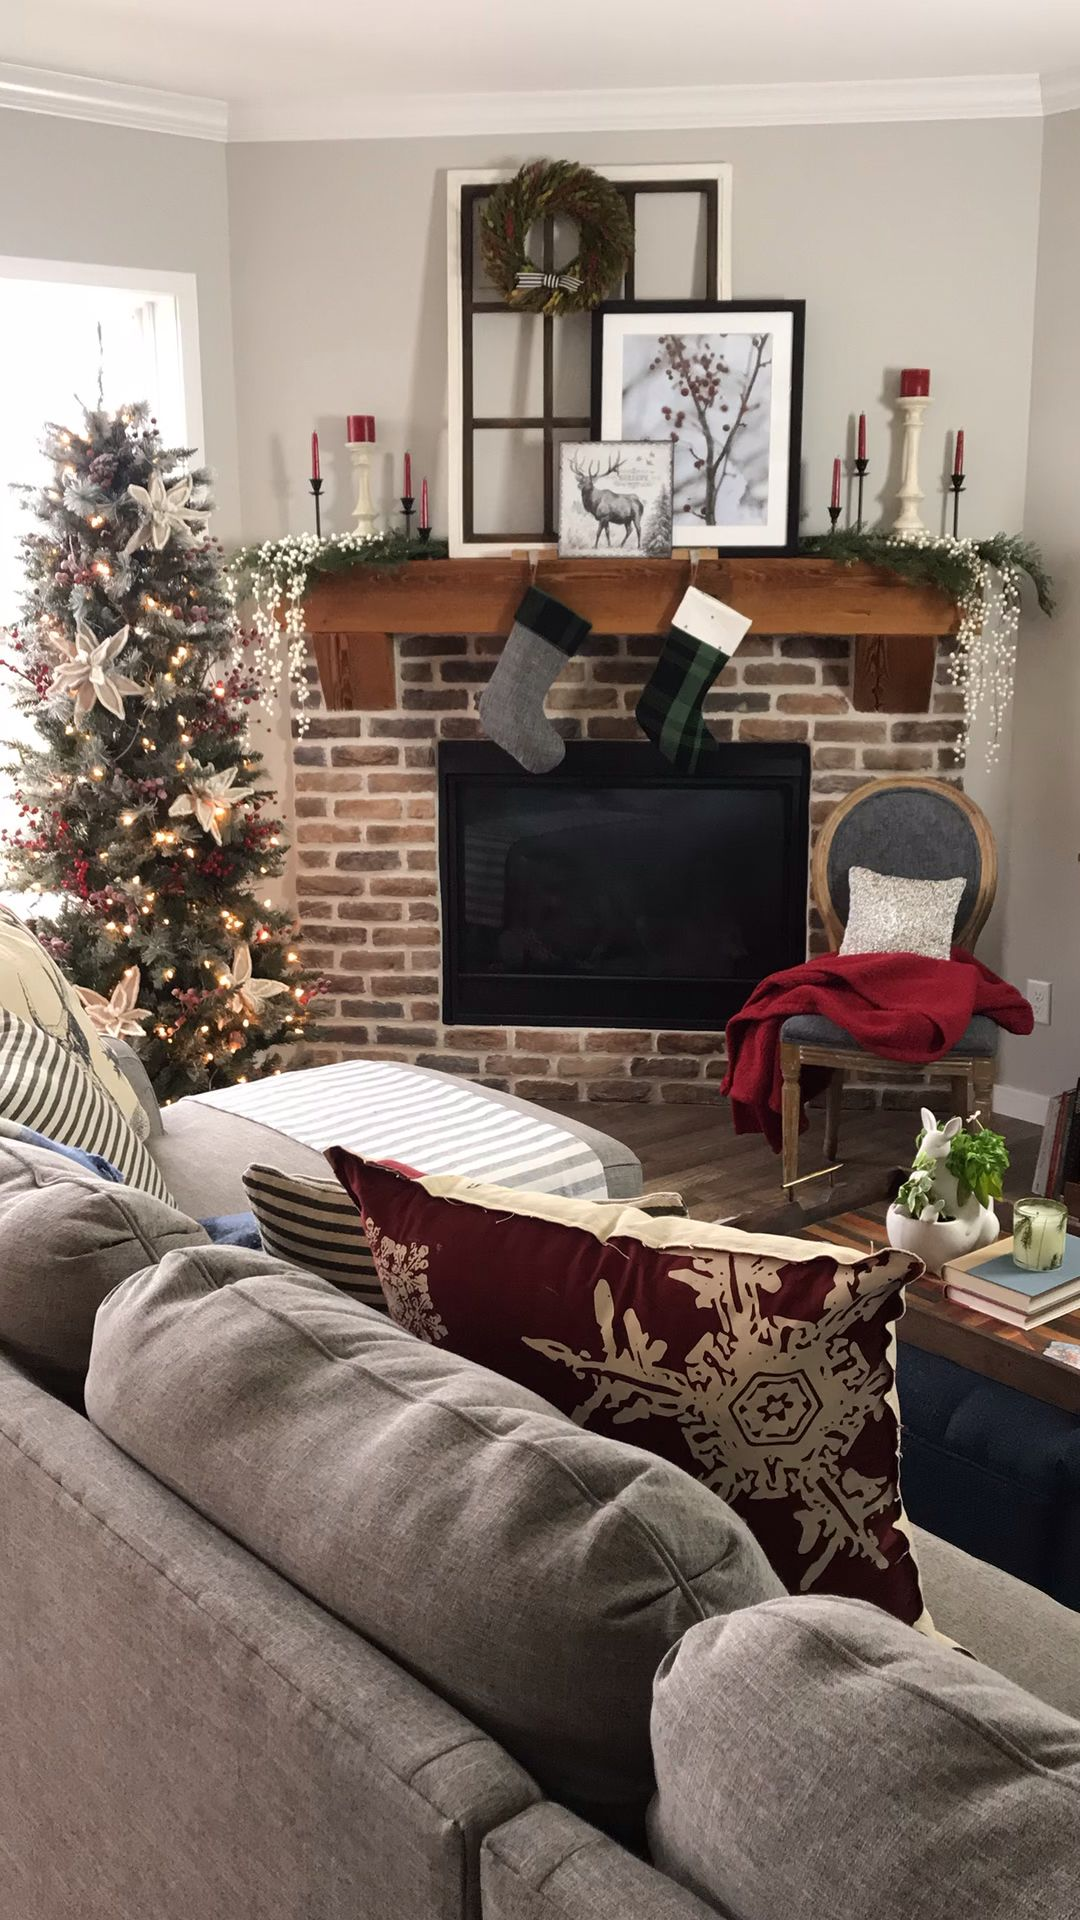 Holiday Decor by The Chic(ish) Chick -   21 christmas decorations living room ideas